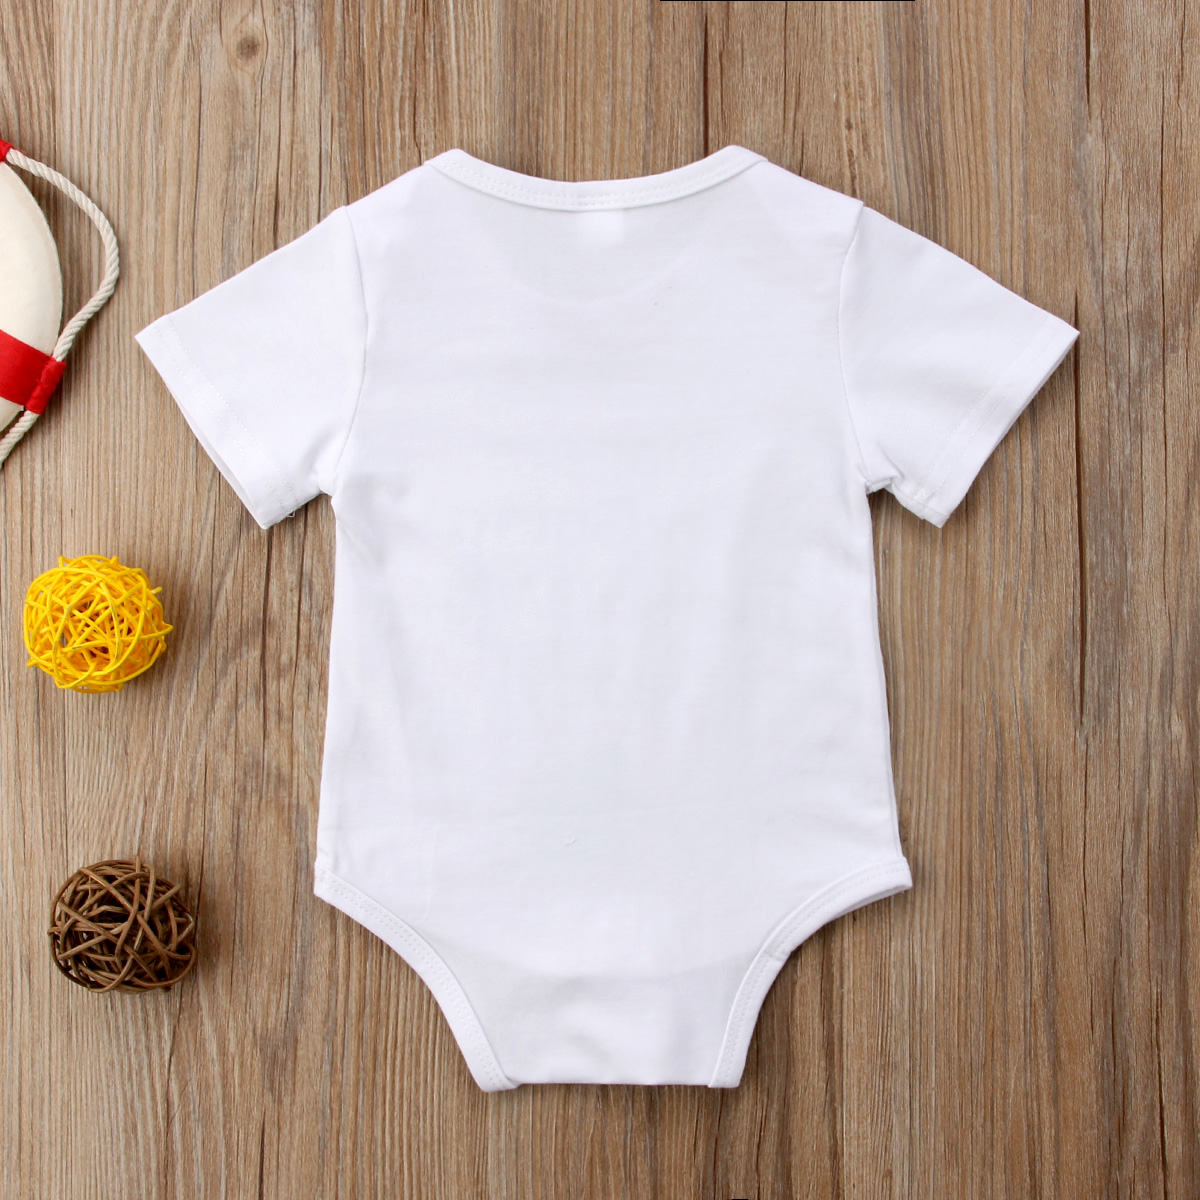 Newborn Baby Boys Girls Letter Bodysuits Onesie Infant Babies Go Fishing Cute Cotton Bodysuit one-pieces Outfits Kids Clothing